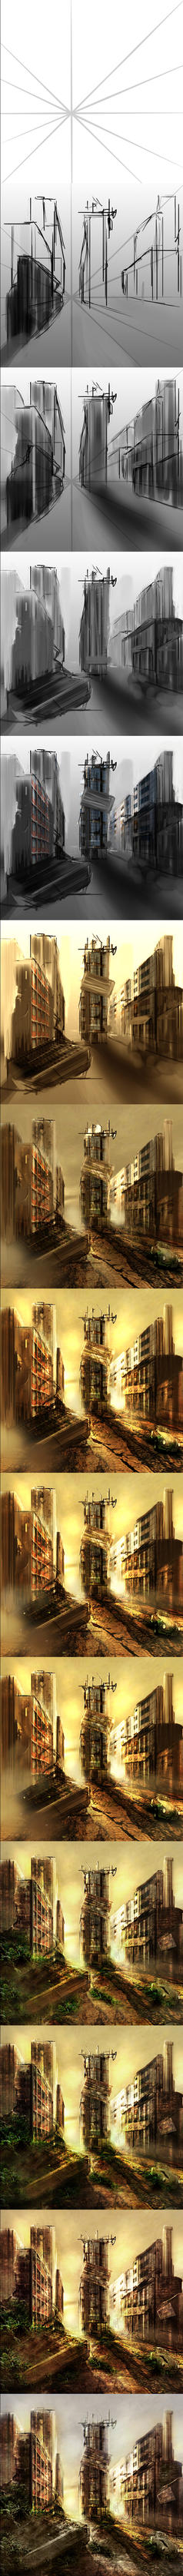 Post Apocalyptic Scene Process.... by MilanPad